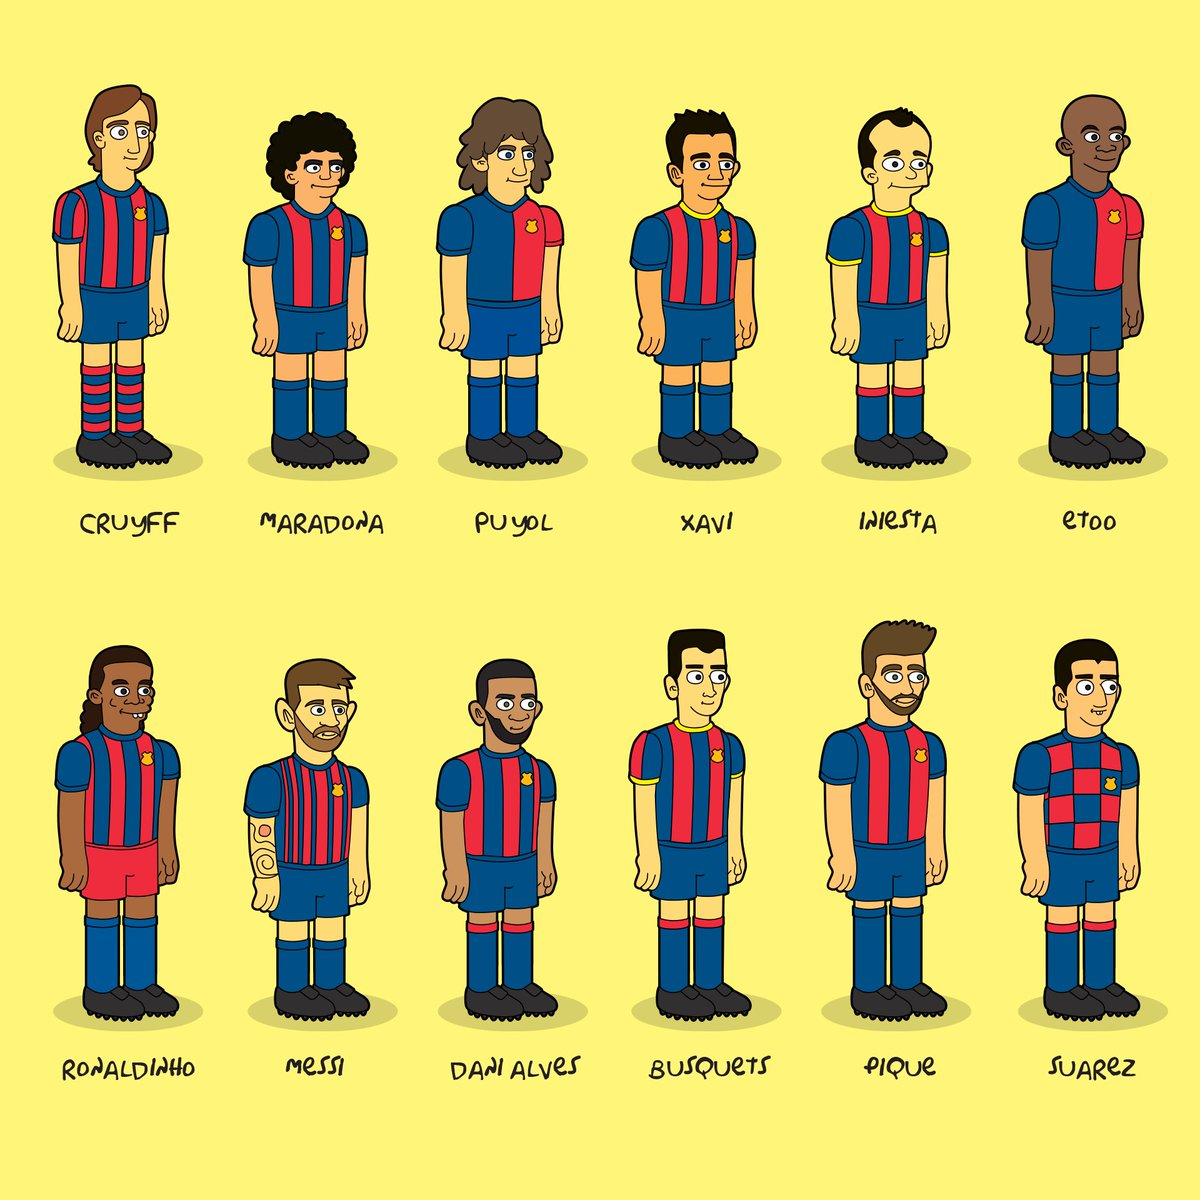 Drawing some #Barcelona legends  pic.twitter.com/4RnrI6sEvN